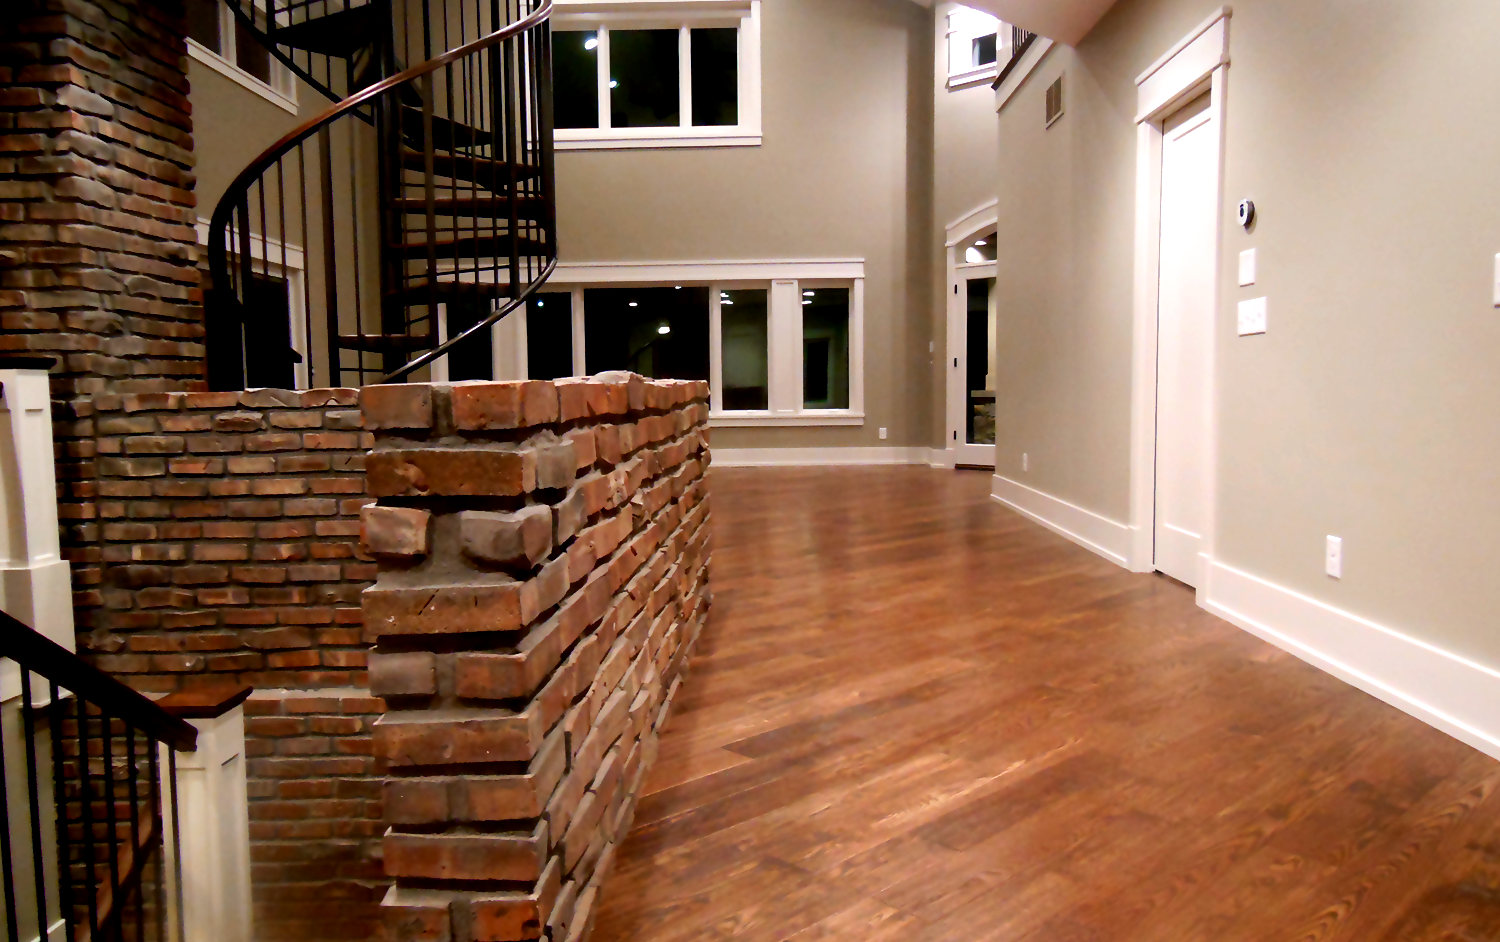 Hallway of Custom Home With Brick Features